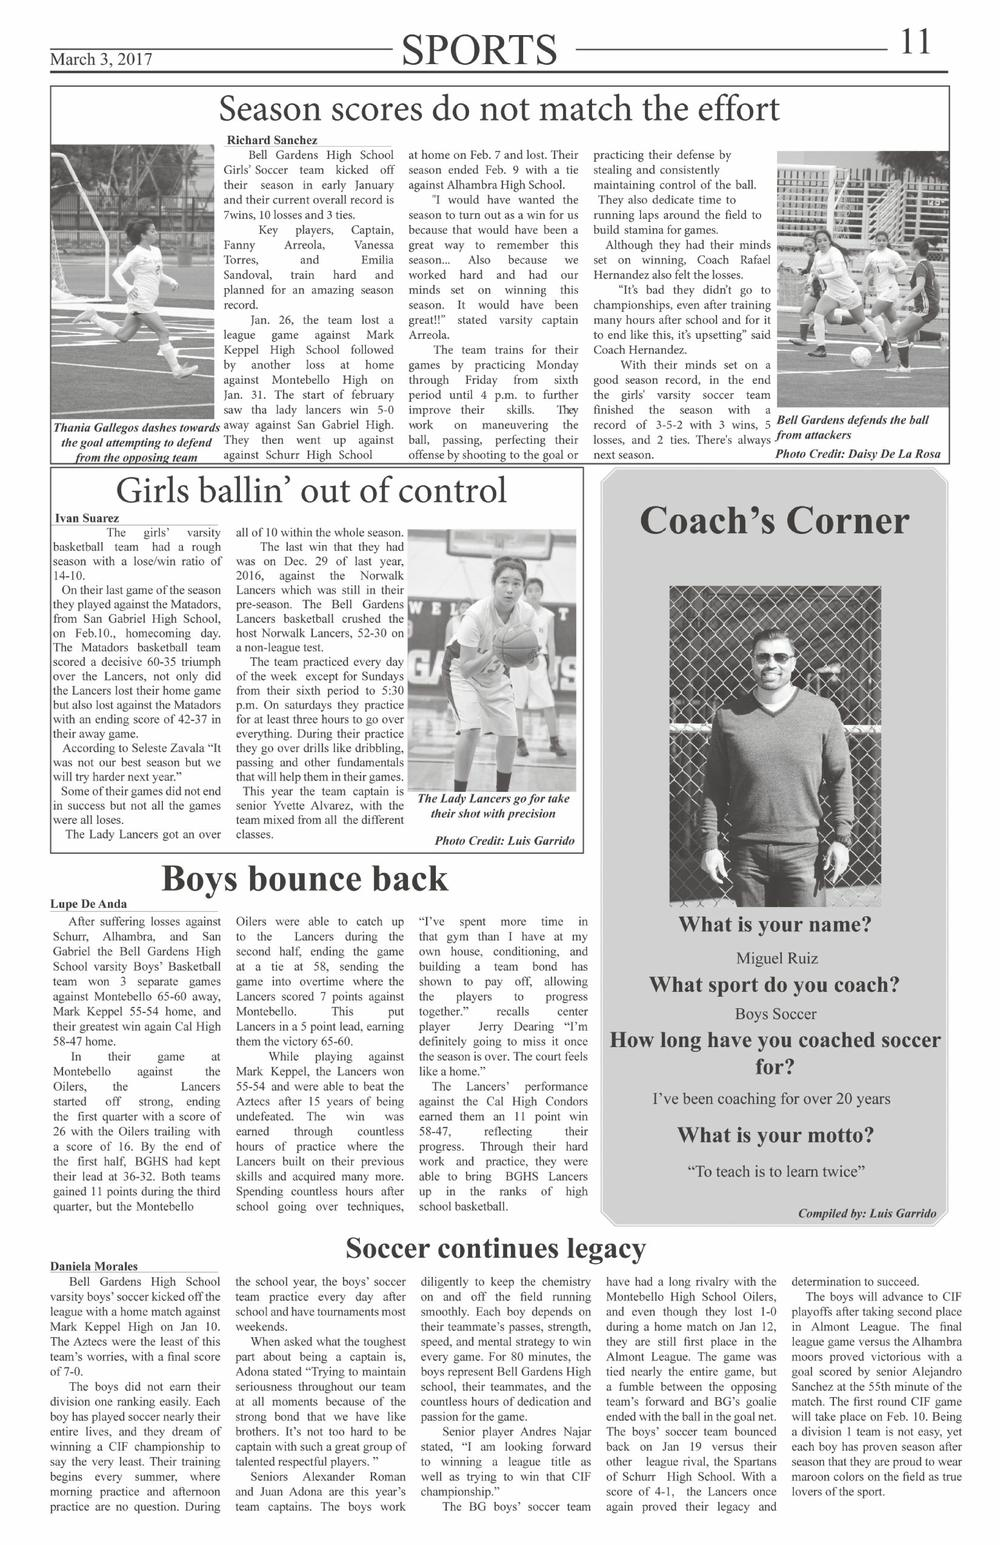 Sports page 11